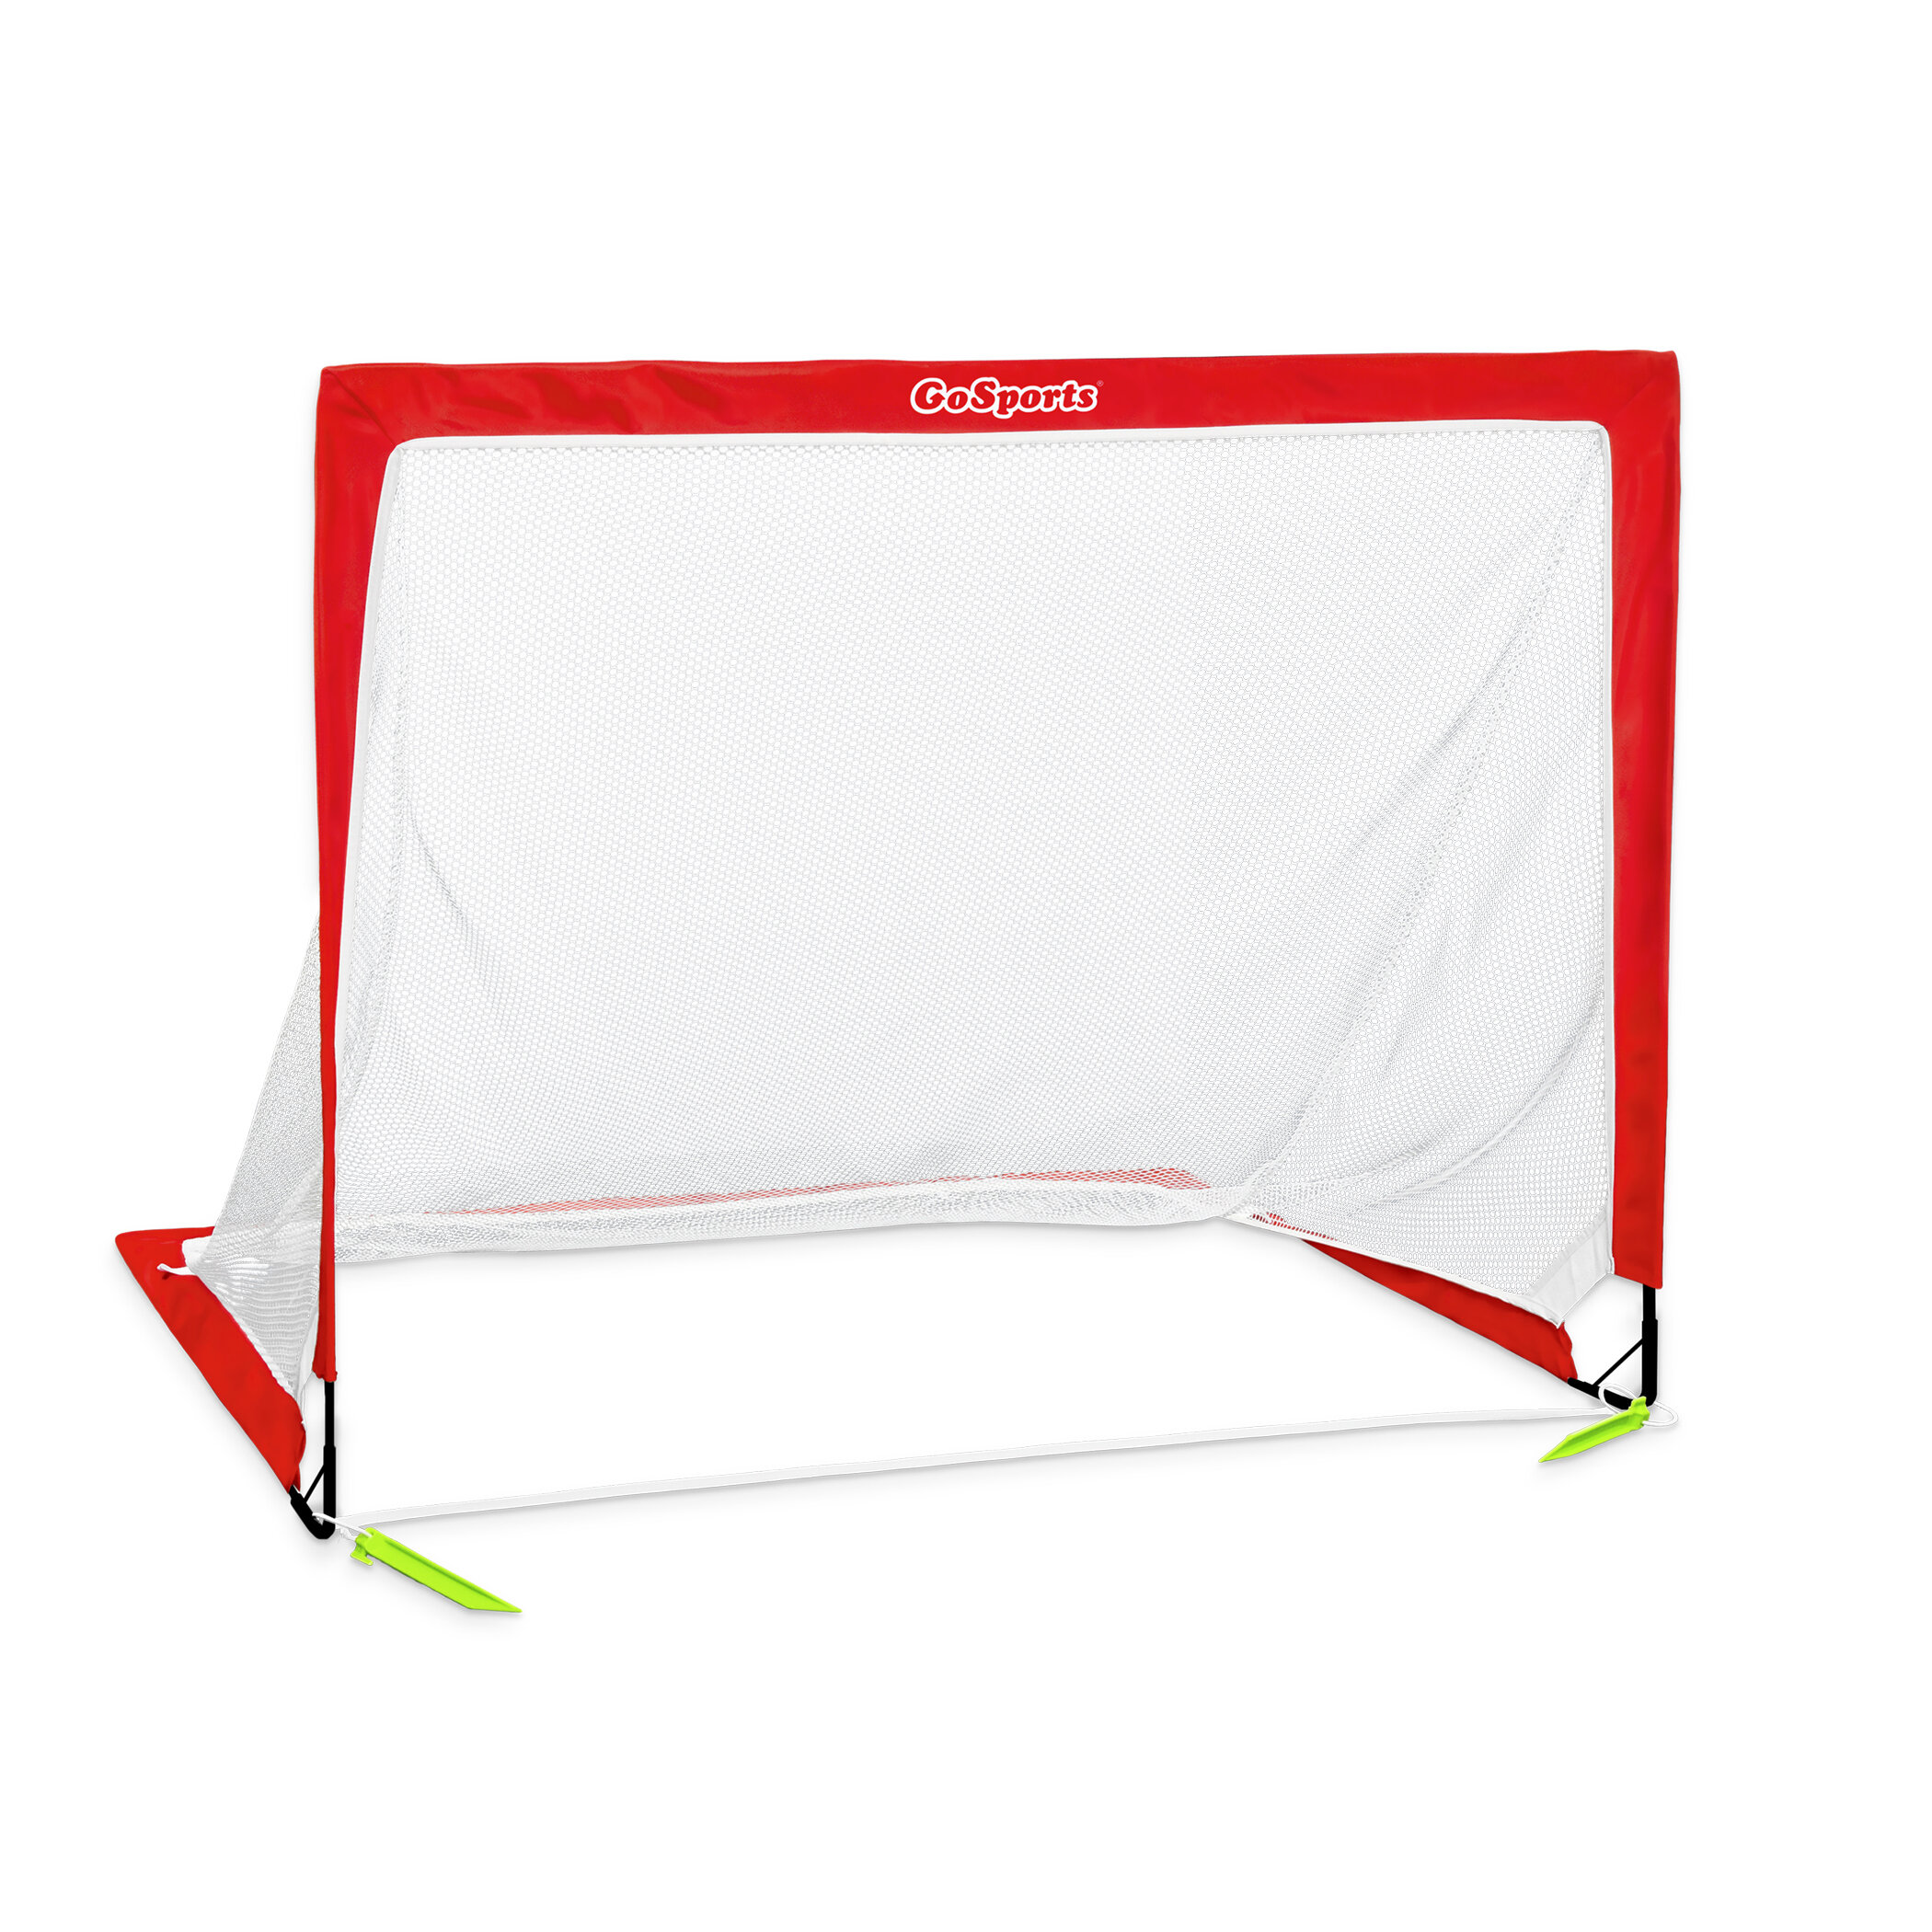 Football Goal Net Pegs 10 Pack Plastic for Safety